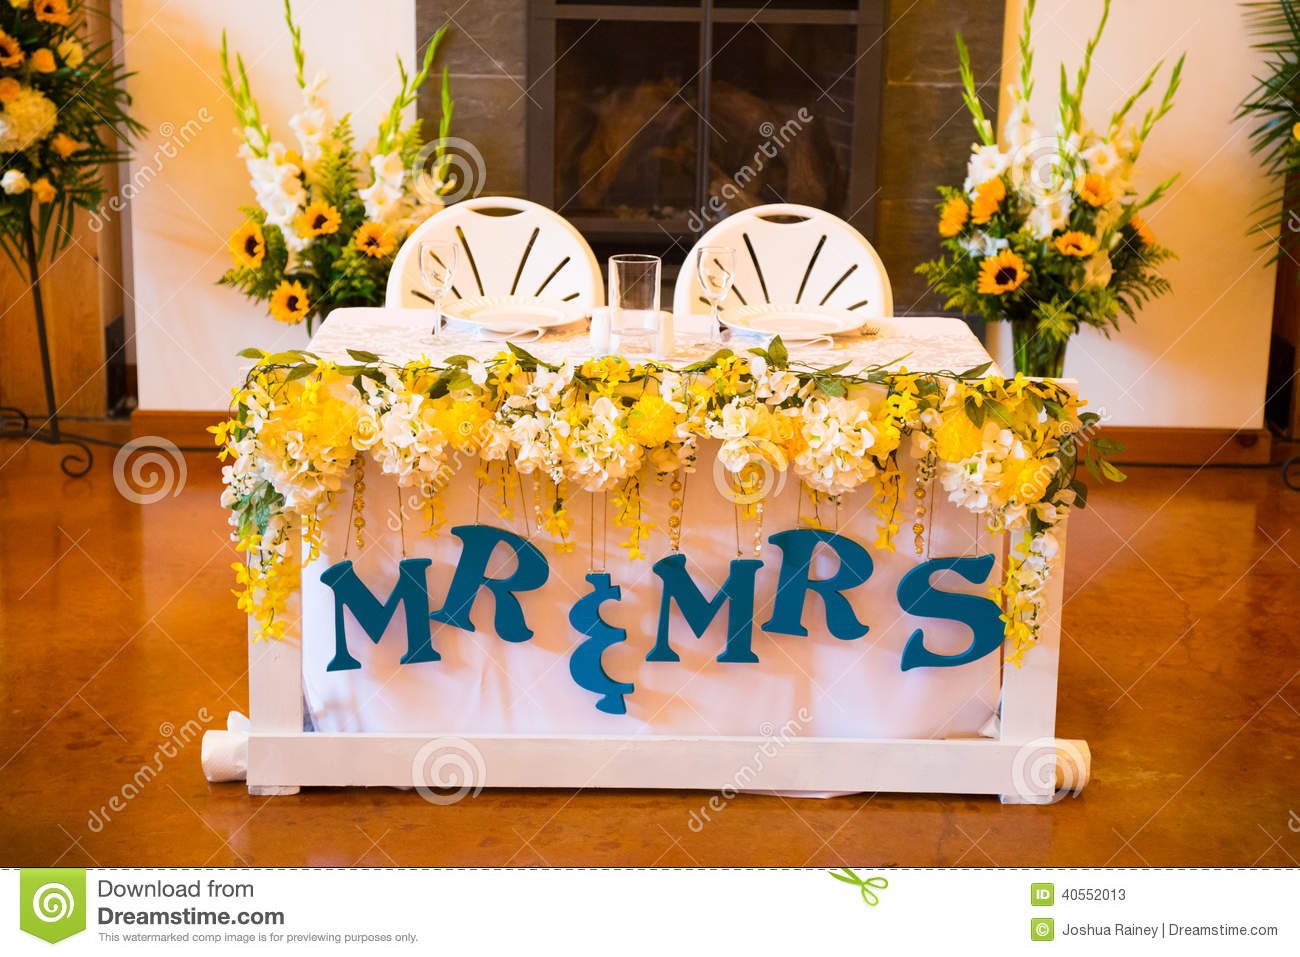 Mr and mrs bride and groom wedding table stock image image of mr and mrs bride and groom wedding table event weddings junglespirit Choice Image